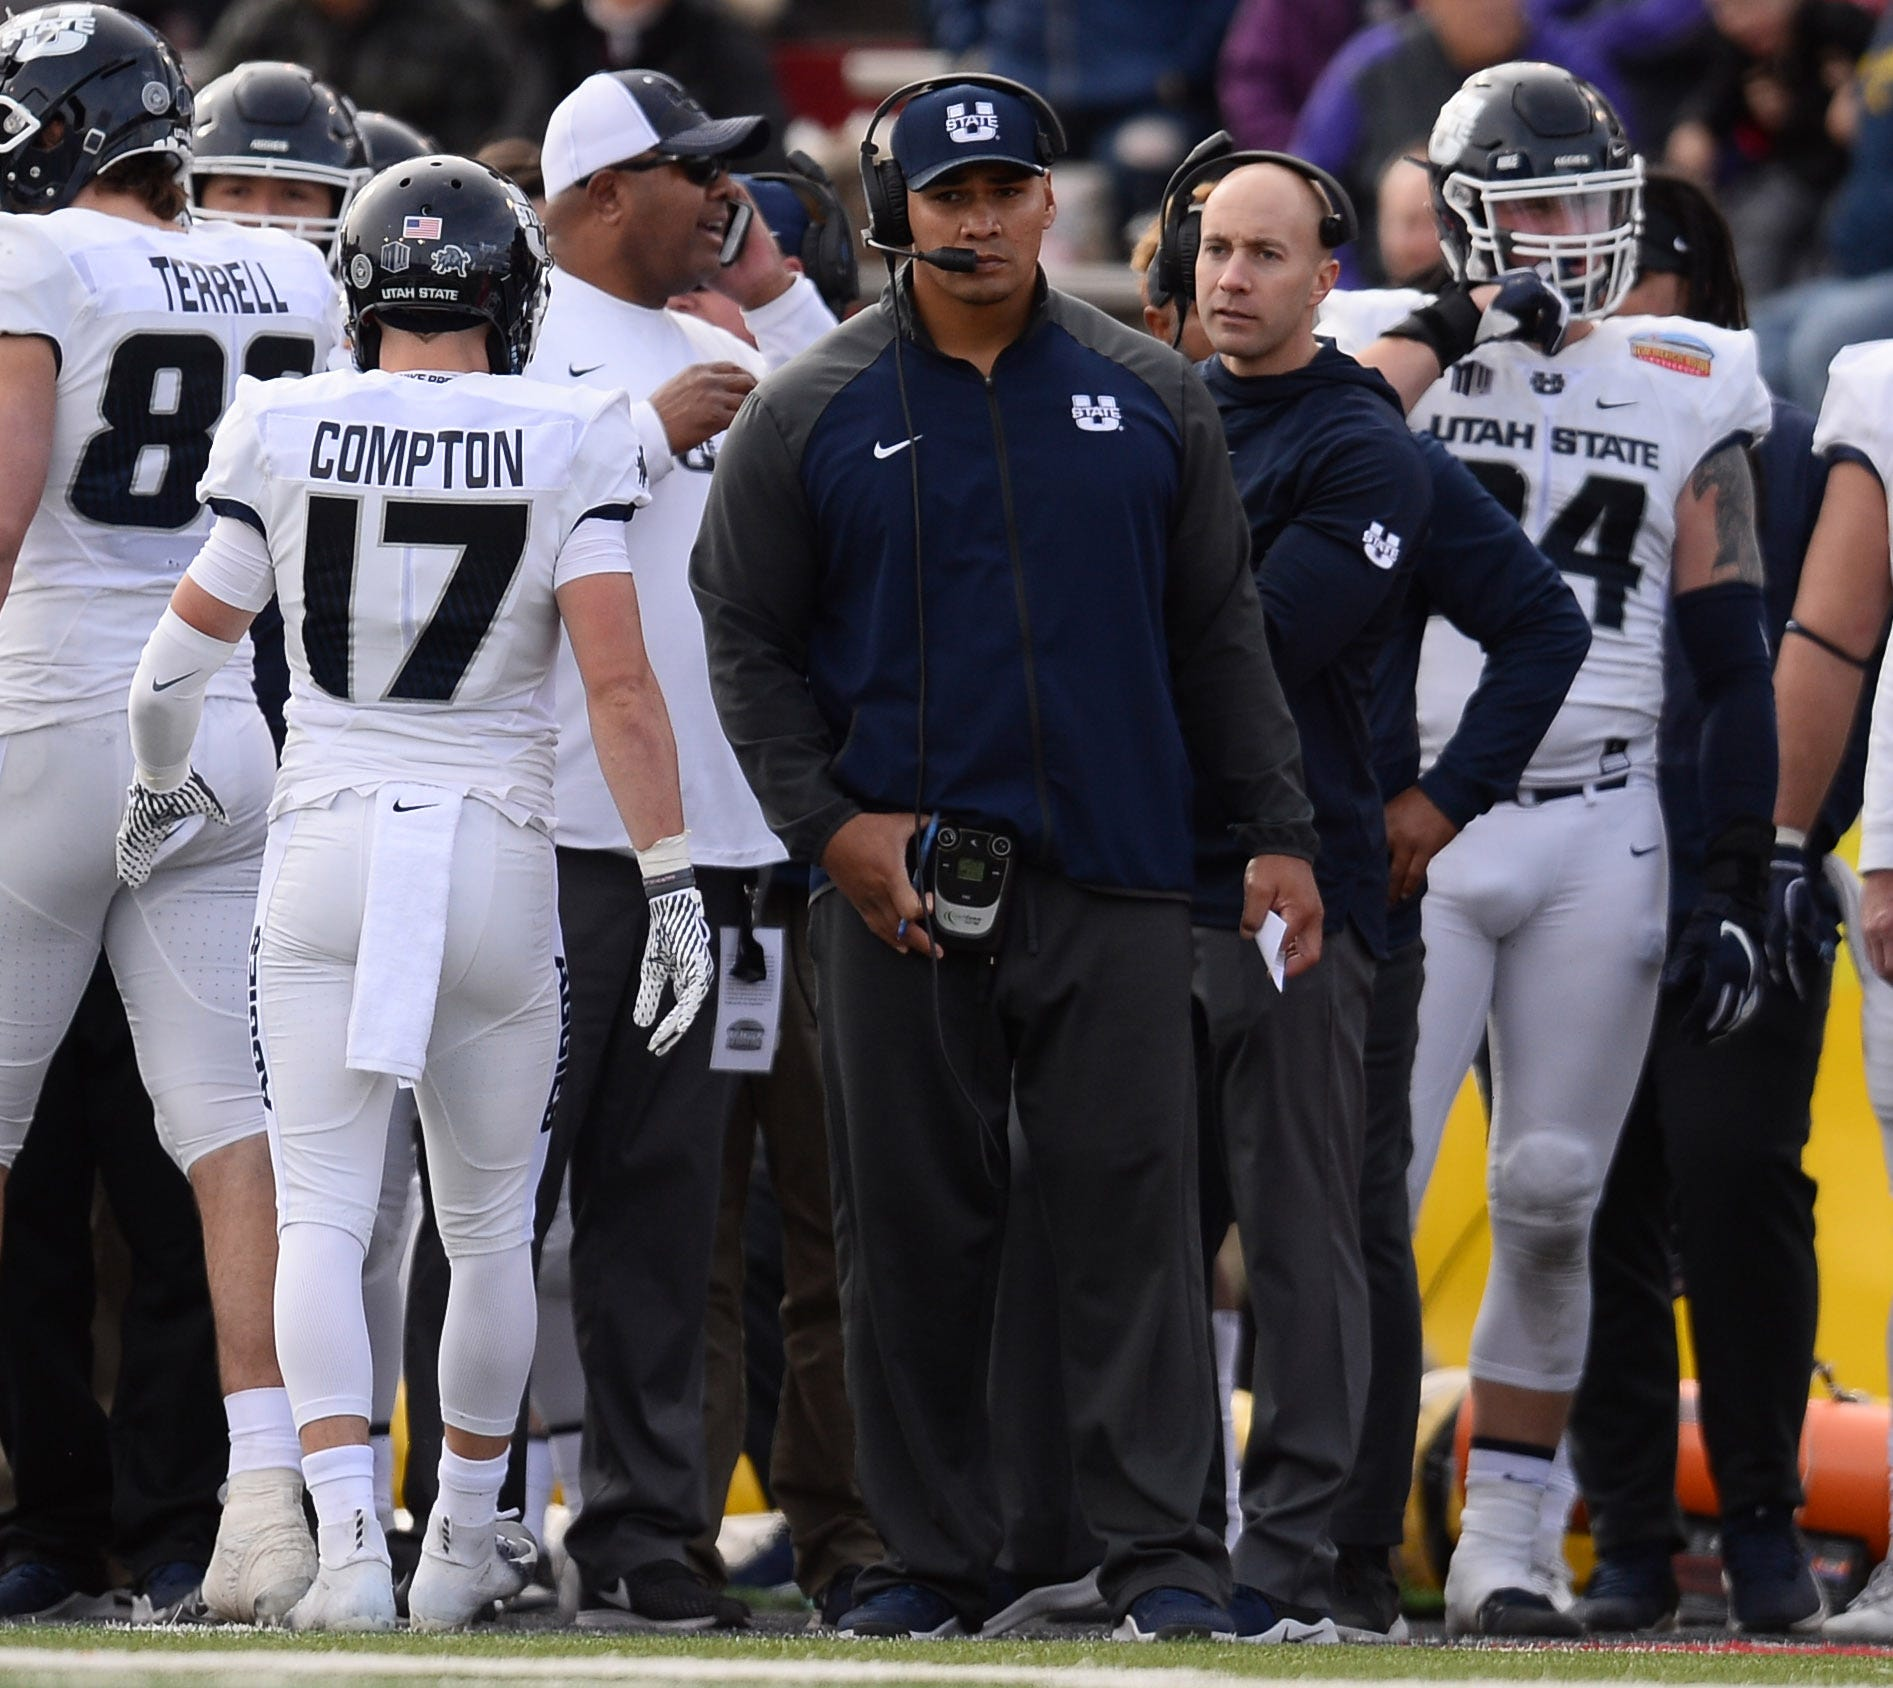 Report: Utah State football players opt out of season finale after comments by school president